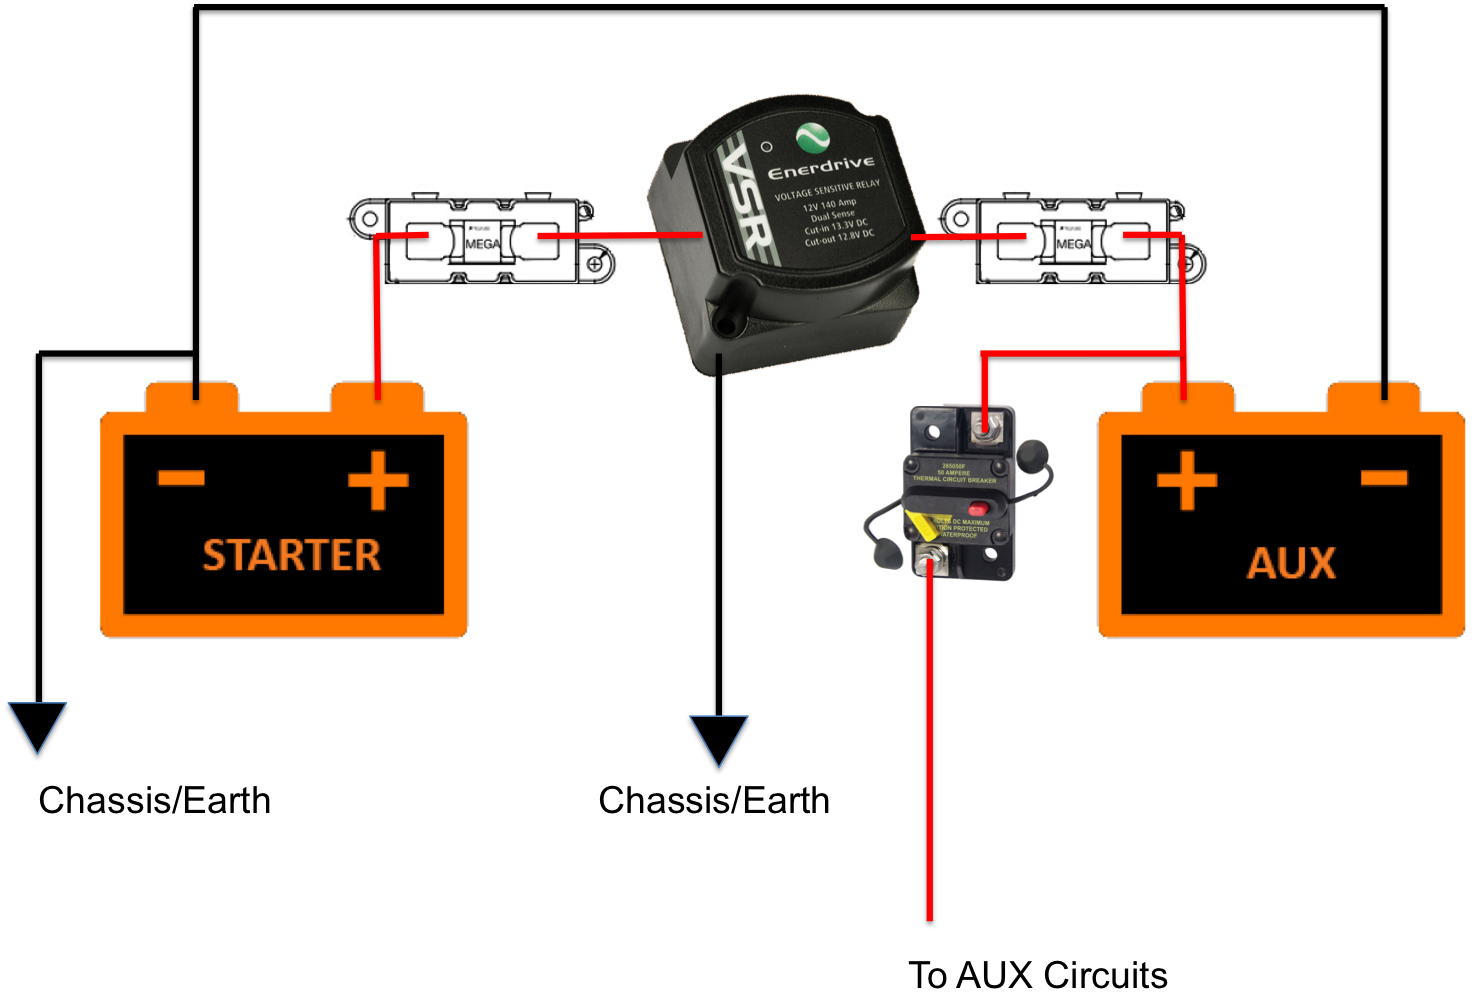 EnerderriveMegafuseBreaker install guides solid kit vsr wiring diagram at panicattacktreatment.co